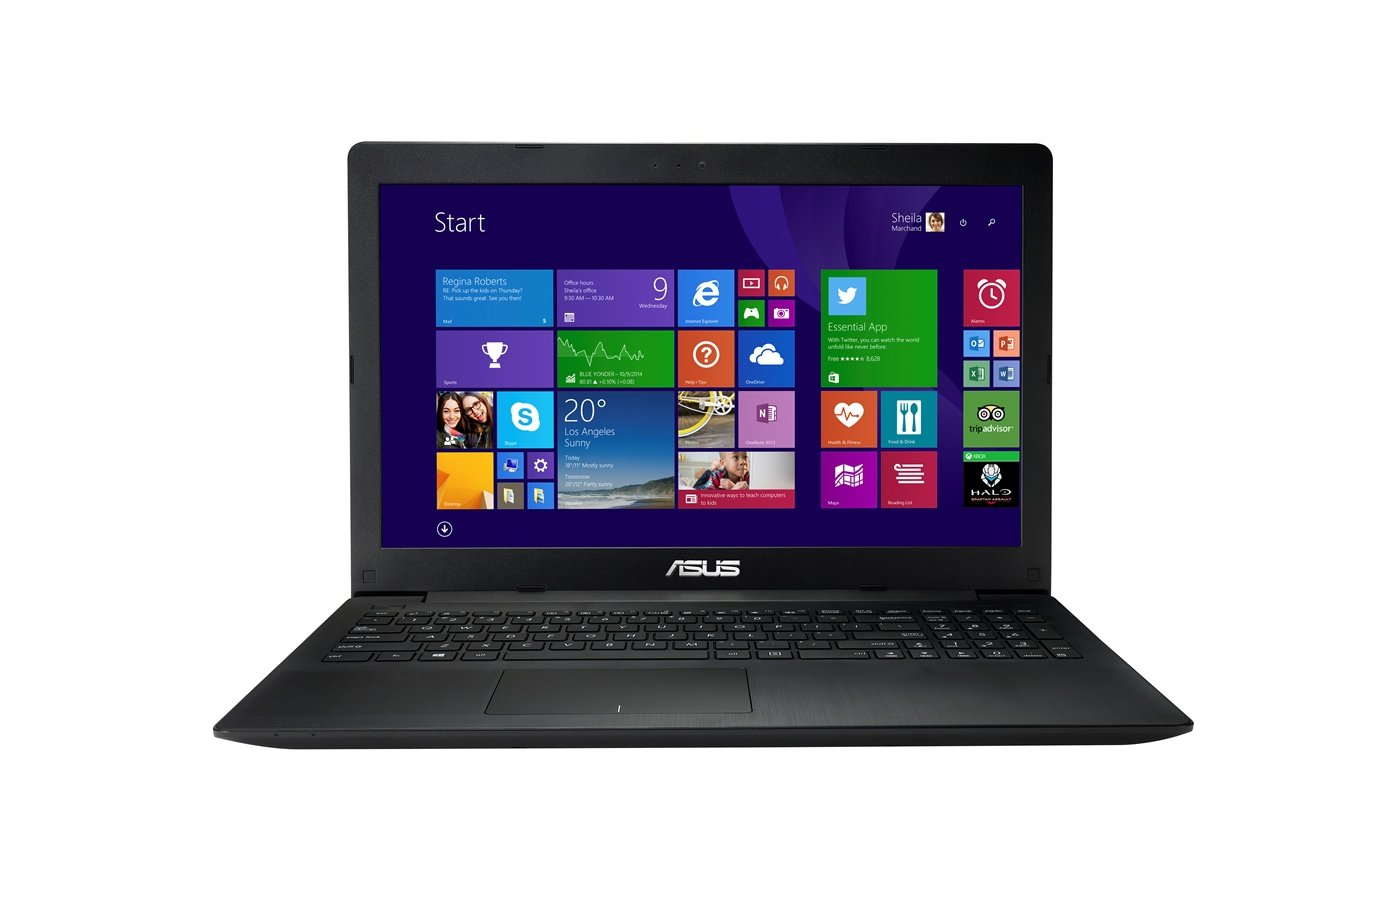 Ноутбук ASUS X553MA-BING-SX371B /90NB04X6-M14940/ intel N2840/2Gb/500Gb/15.6/WiFi/Win8 Black